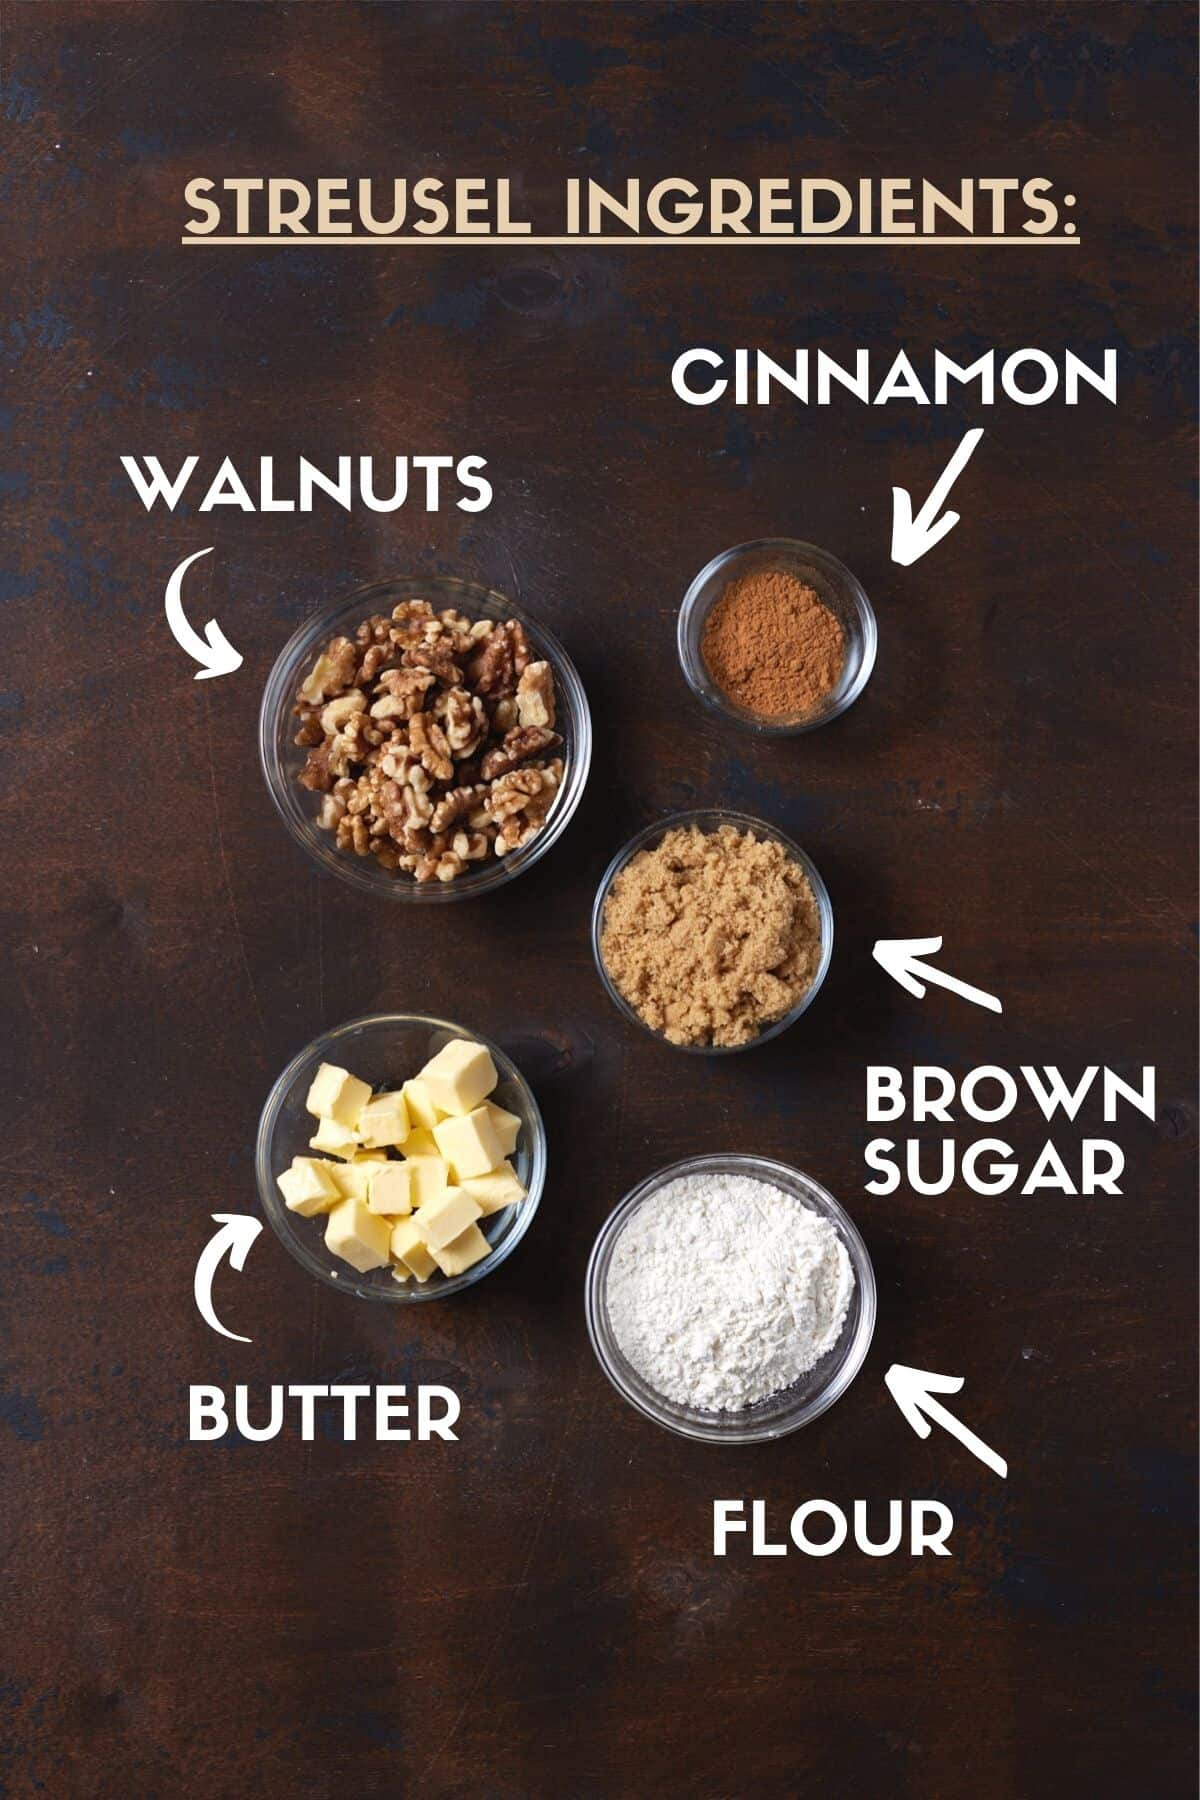 Streusel ingredients, including walnuts, sugar, flour and butter.